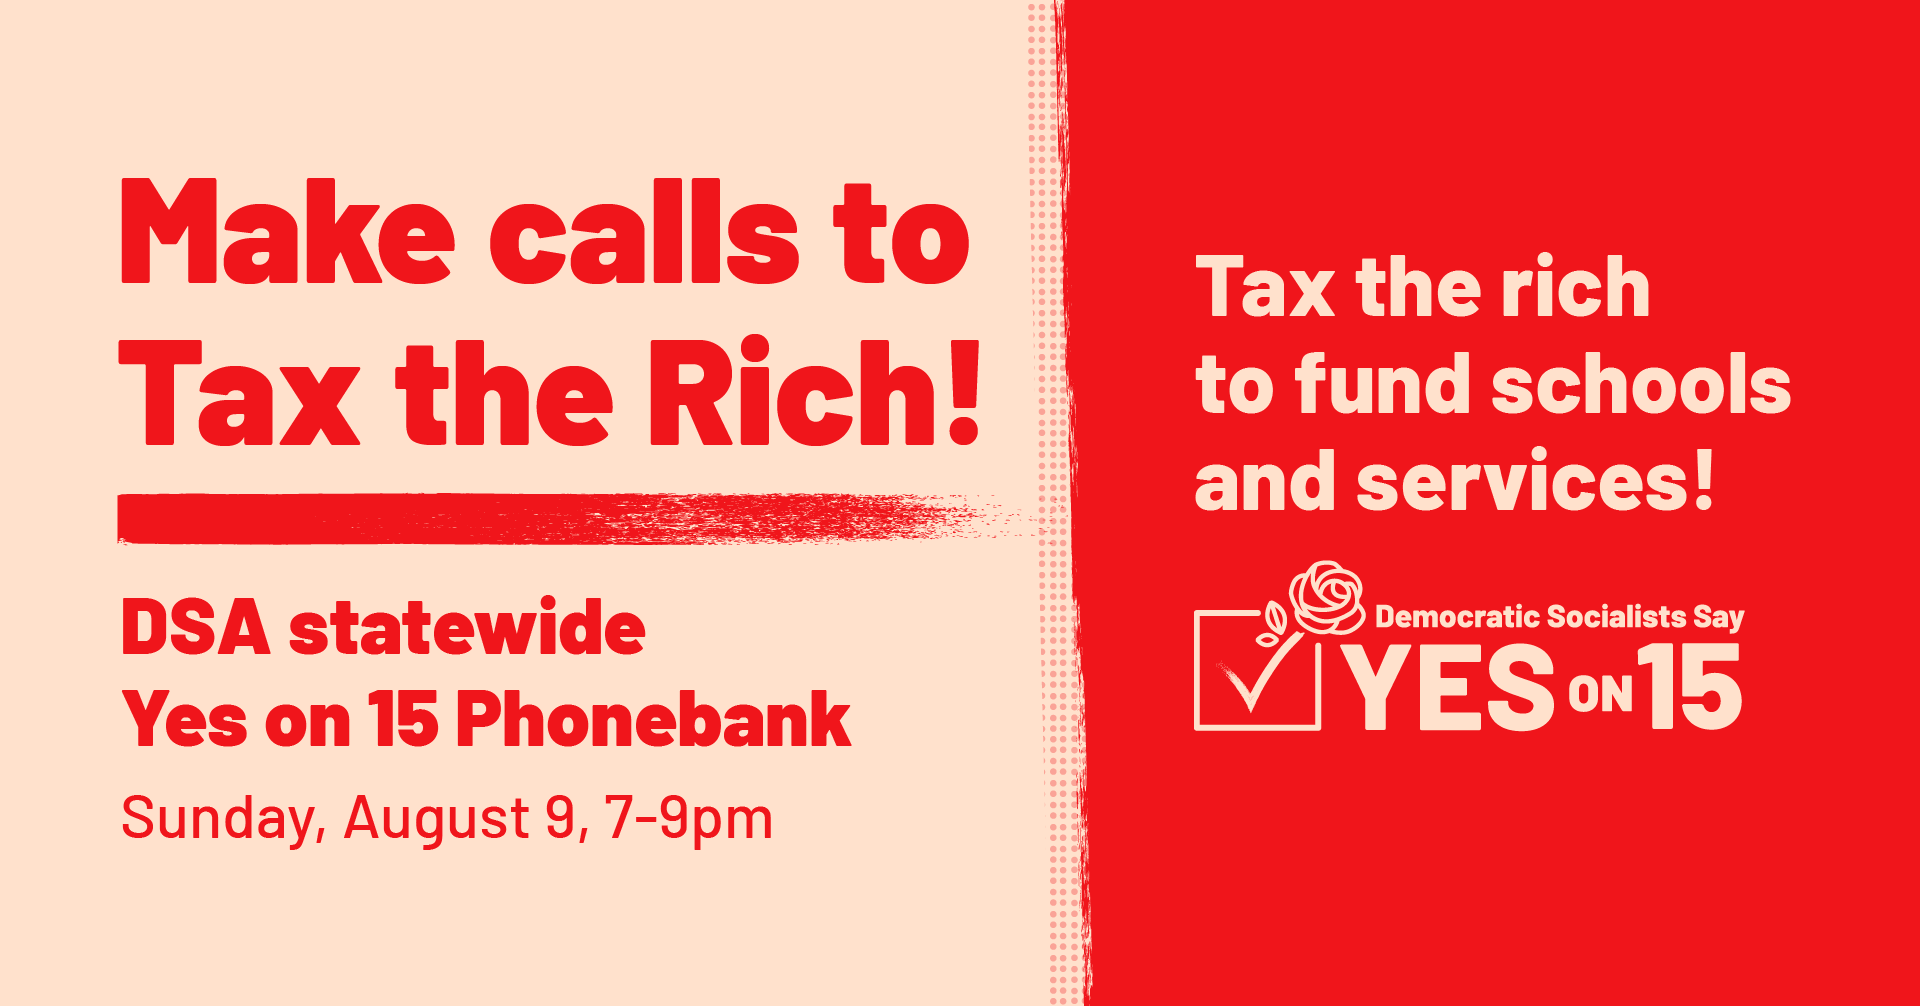 Yes on 15 - Phonebank